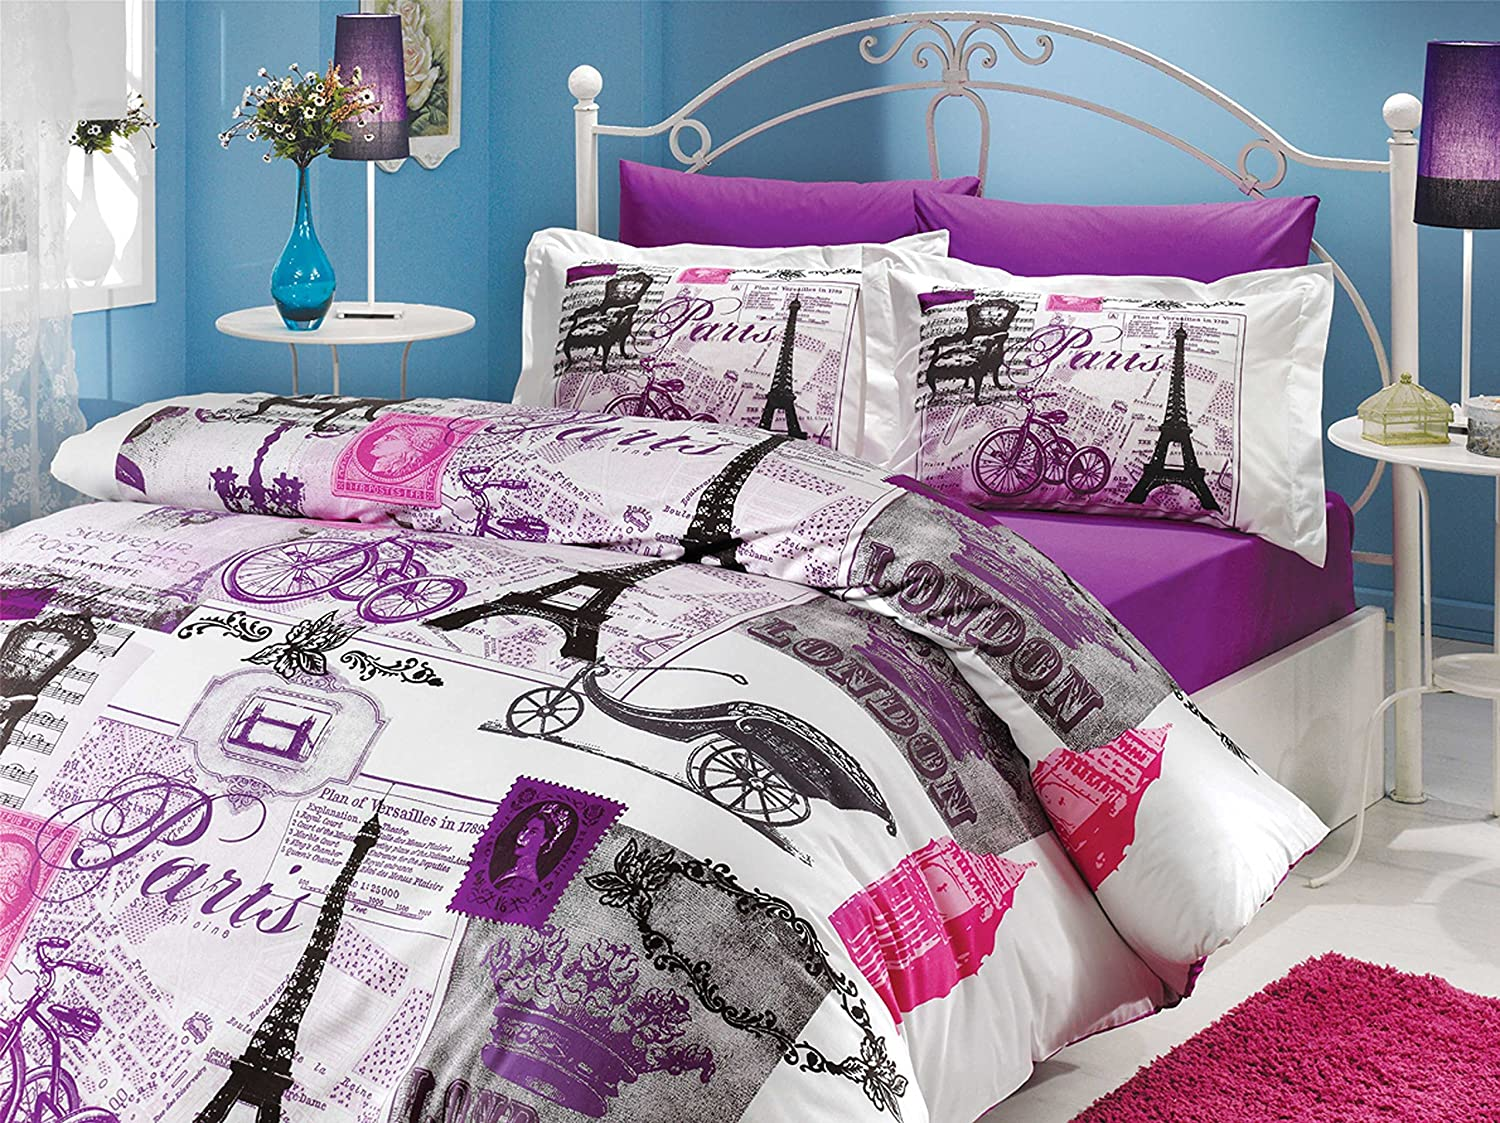 Good Amazon.com: 4 Pieces   Paris Viaje Love Eiffel Tower Print Theme Cotton  Bedding Duvet Cover Sets Bed, Purple, White, Lilac (Twin): Home U0026 Kitchen